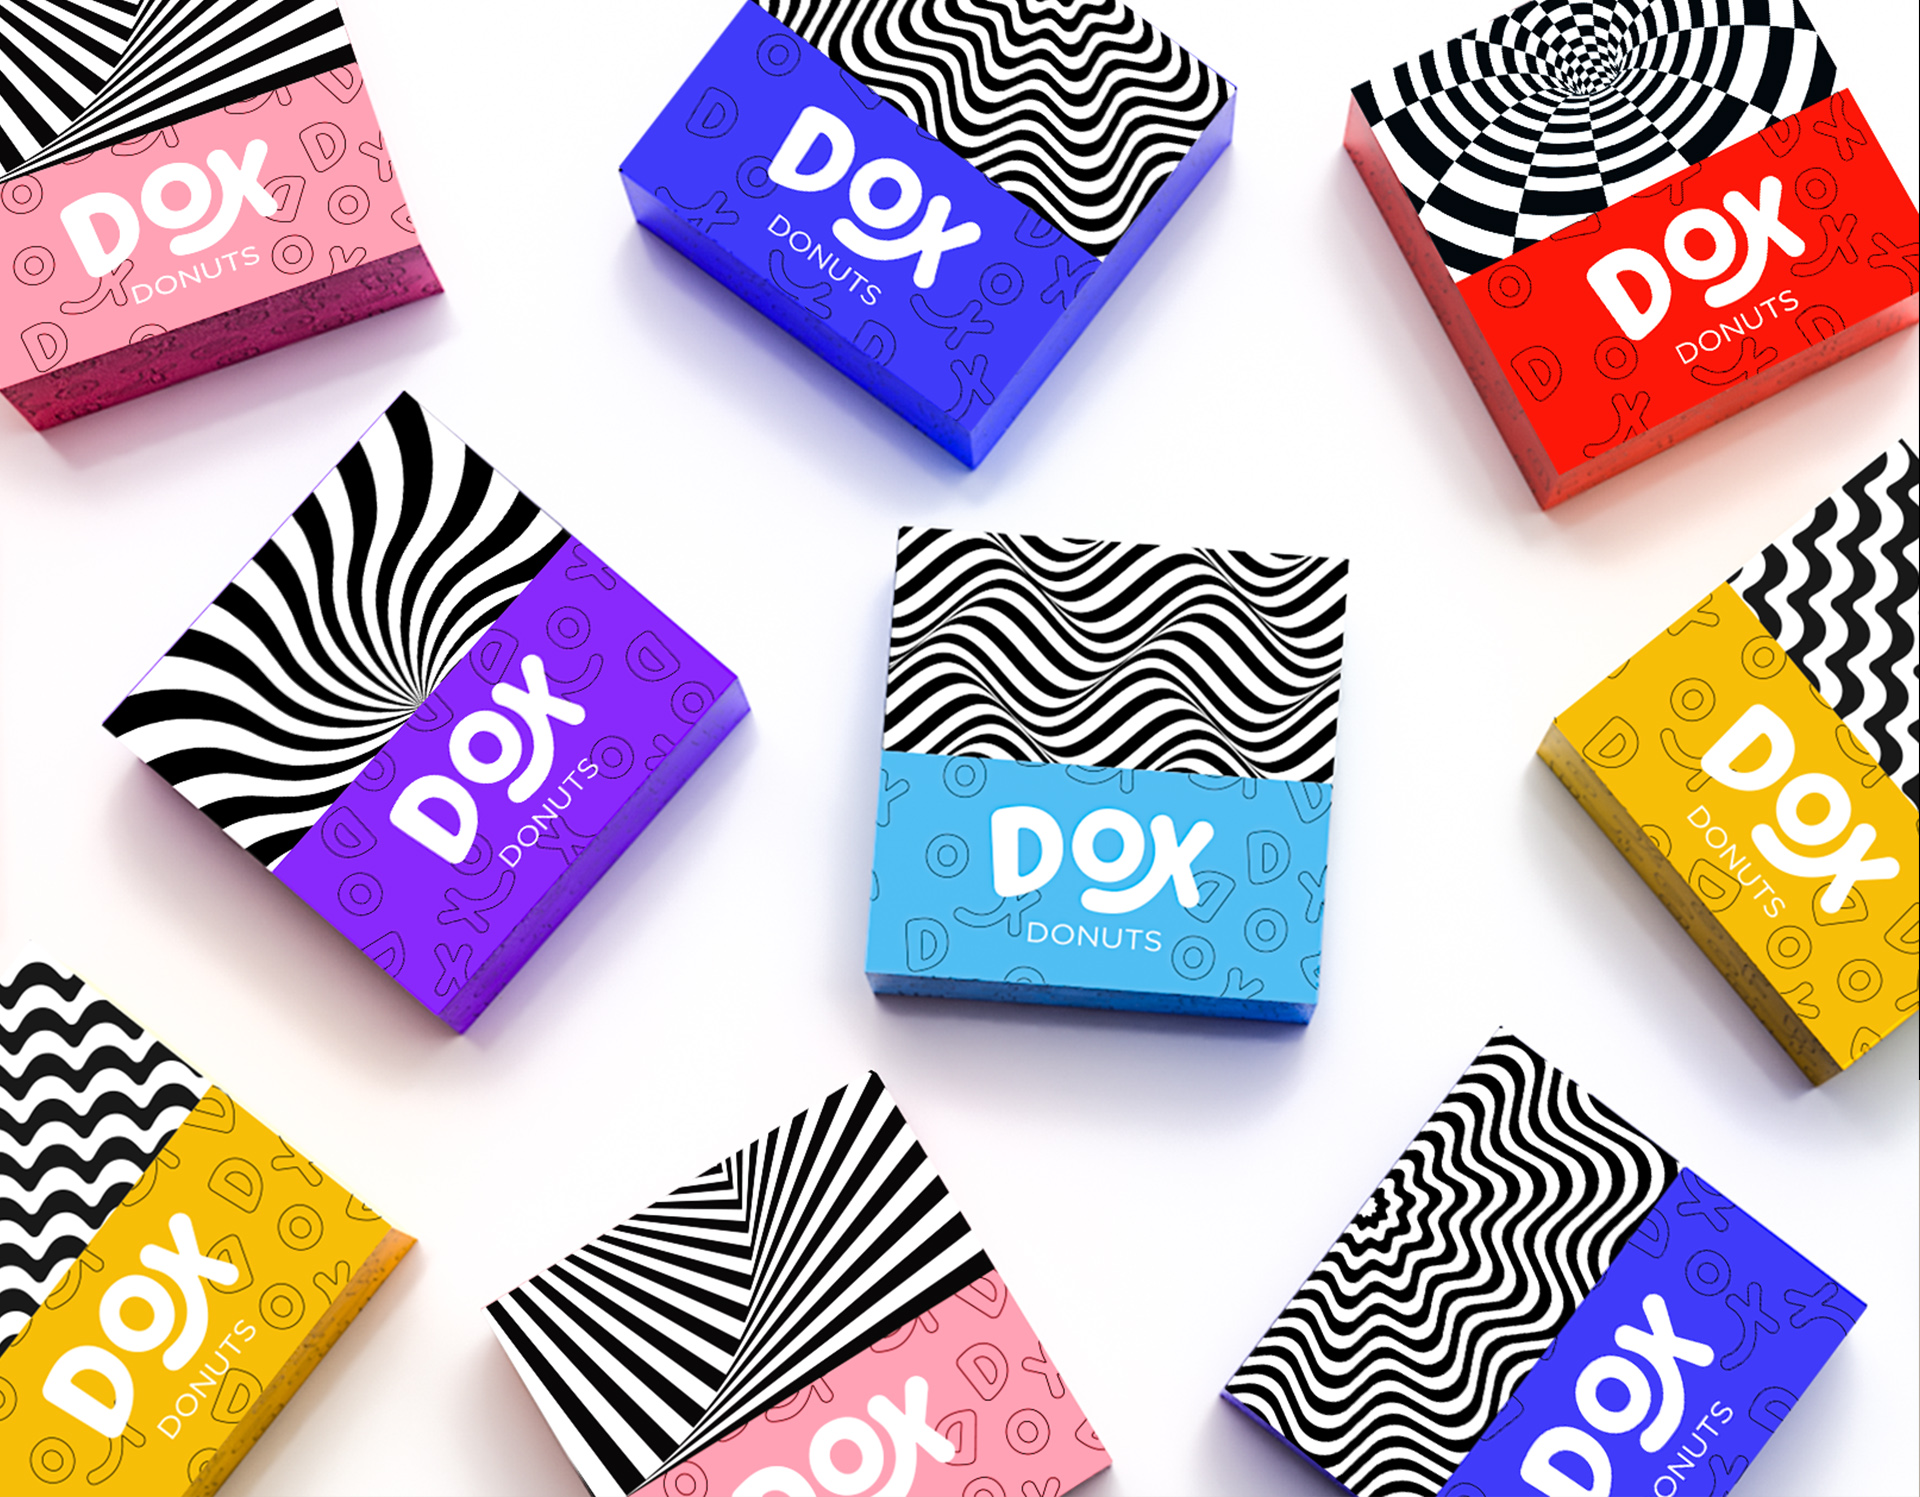 Unique Packaging Design for Dox Donuts